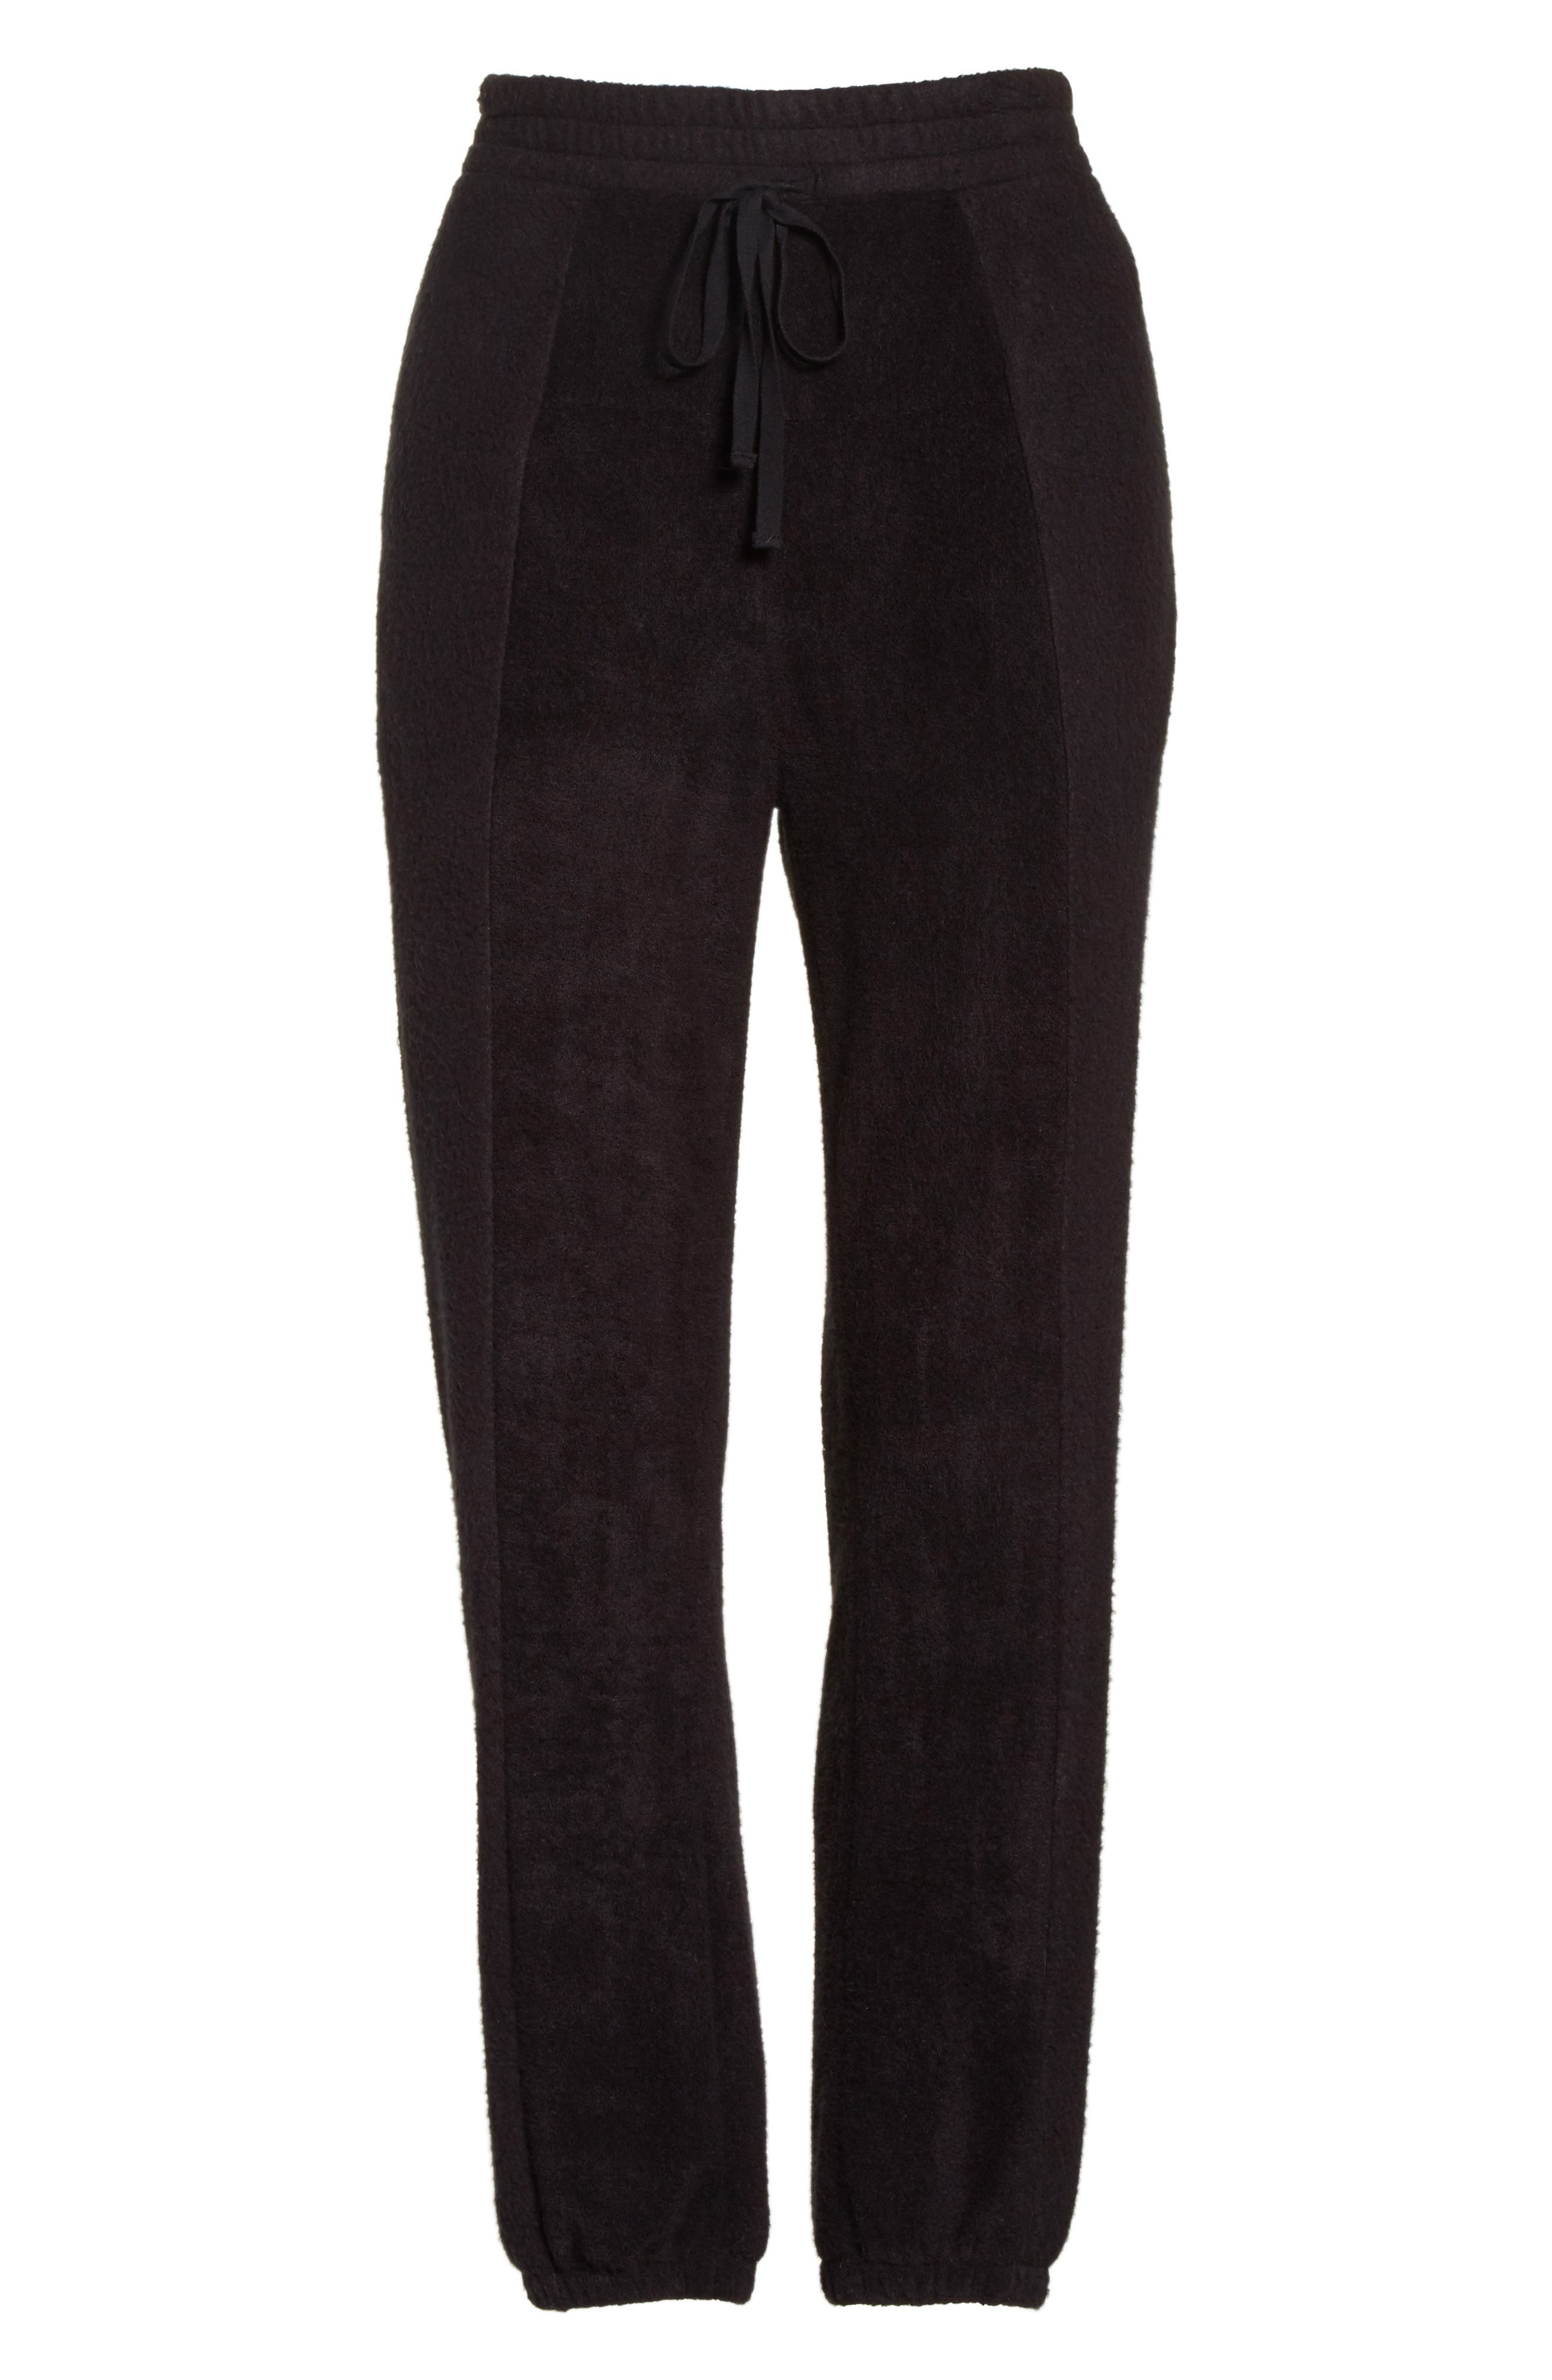 All Day All Night Jogger Pants,                             Alternate thumbnail 6, color,                             001